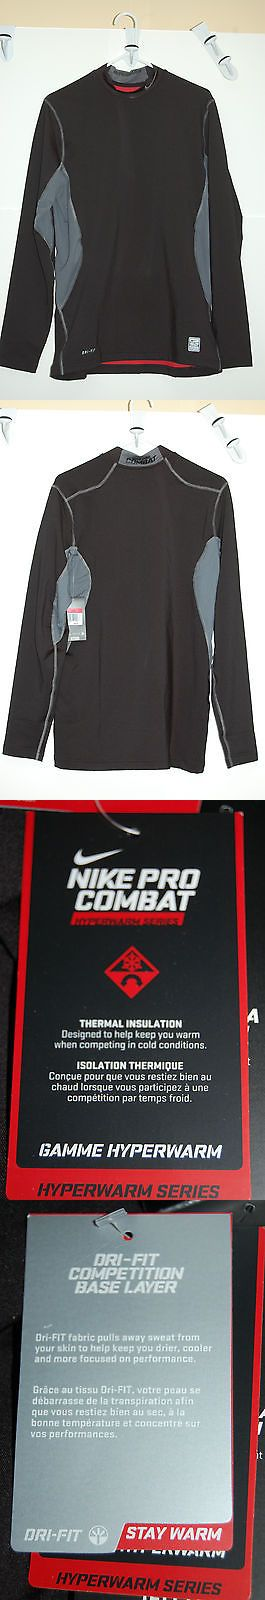 Other Mens Fitness Clothing 40892: Nike Pro Combat Dri-Fit Stay Warm Hyperwarm Mens Fitted Mock Large Black Silver -> BUY IT NOW ONLY: $44.96 on eBay!